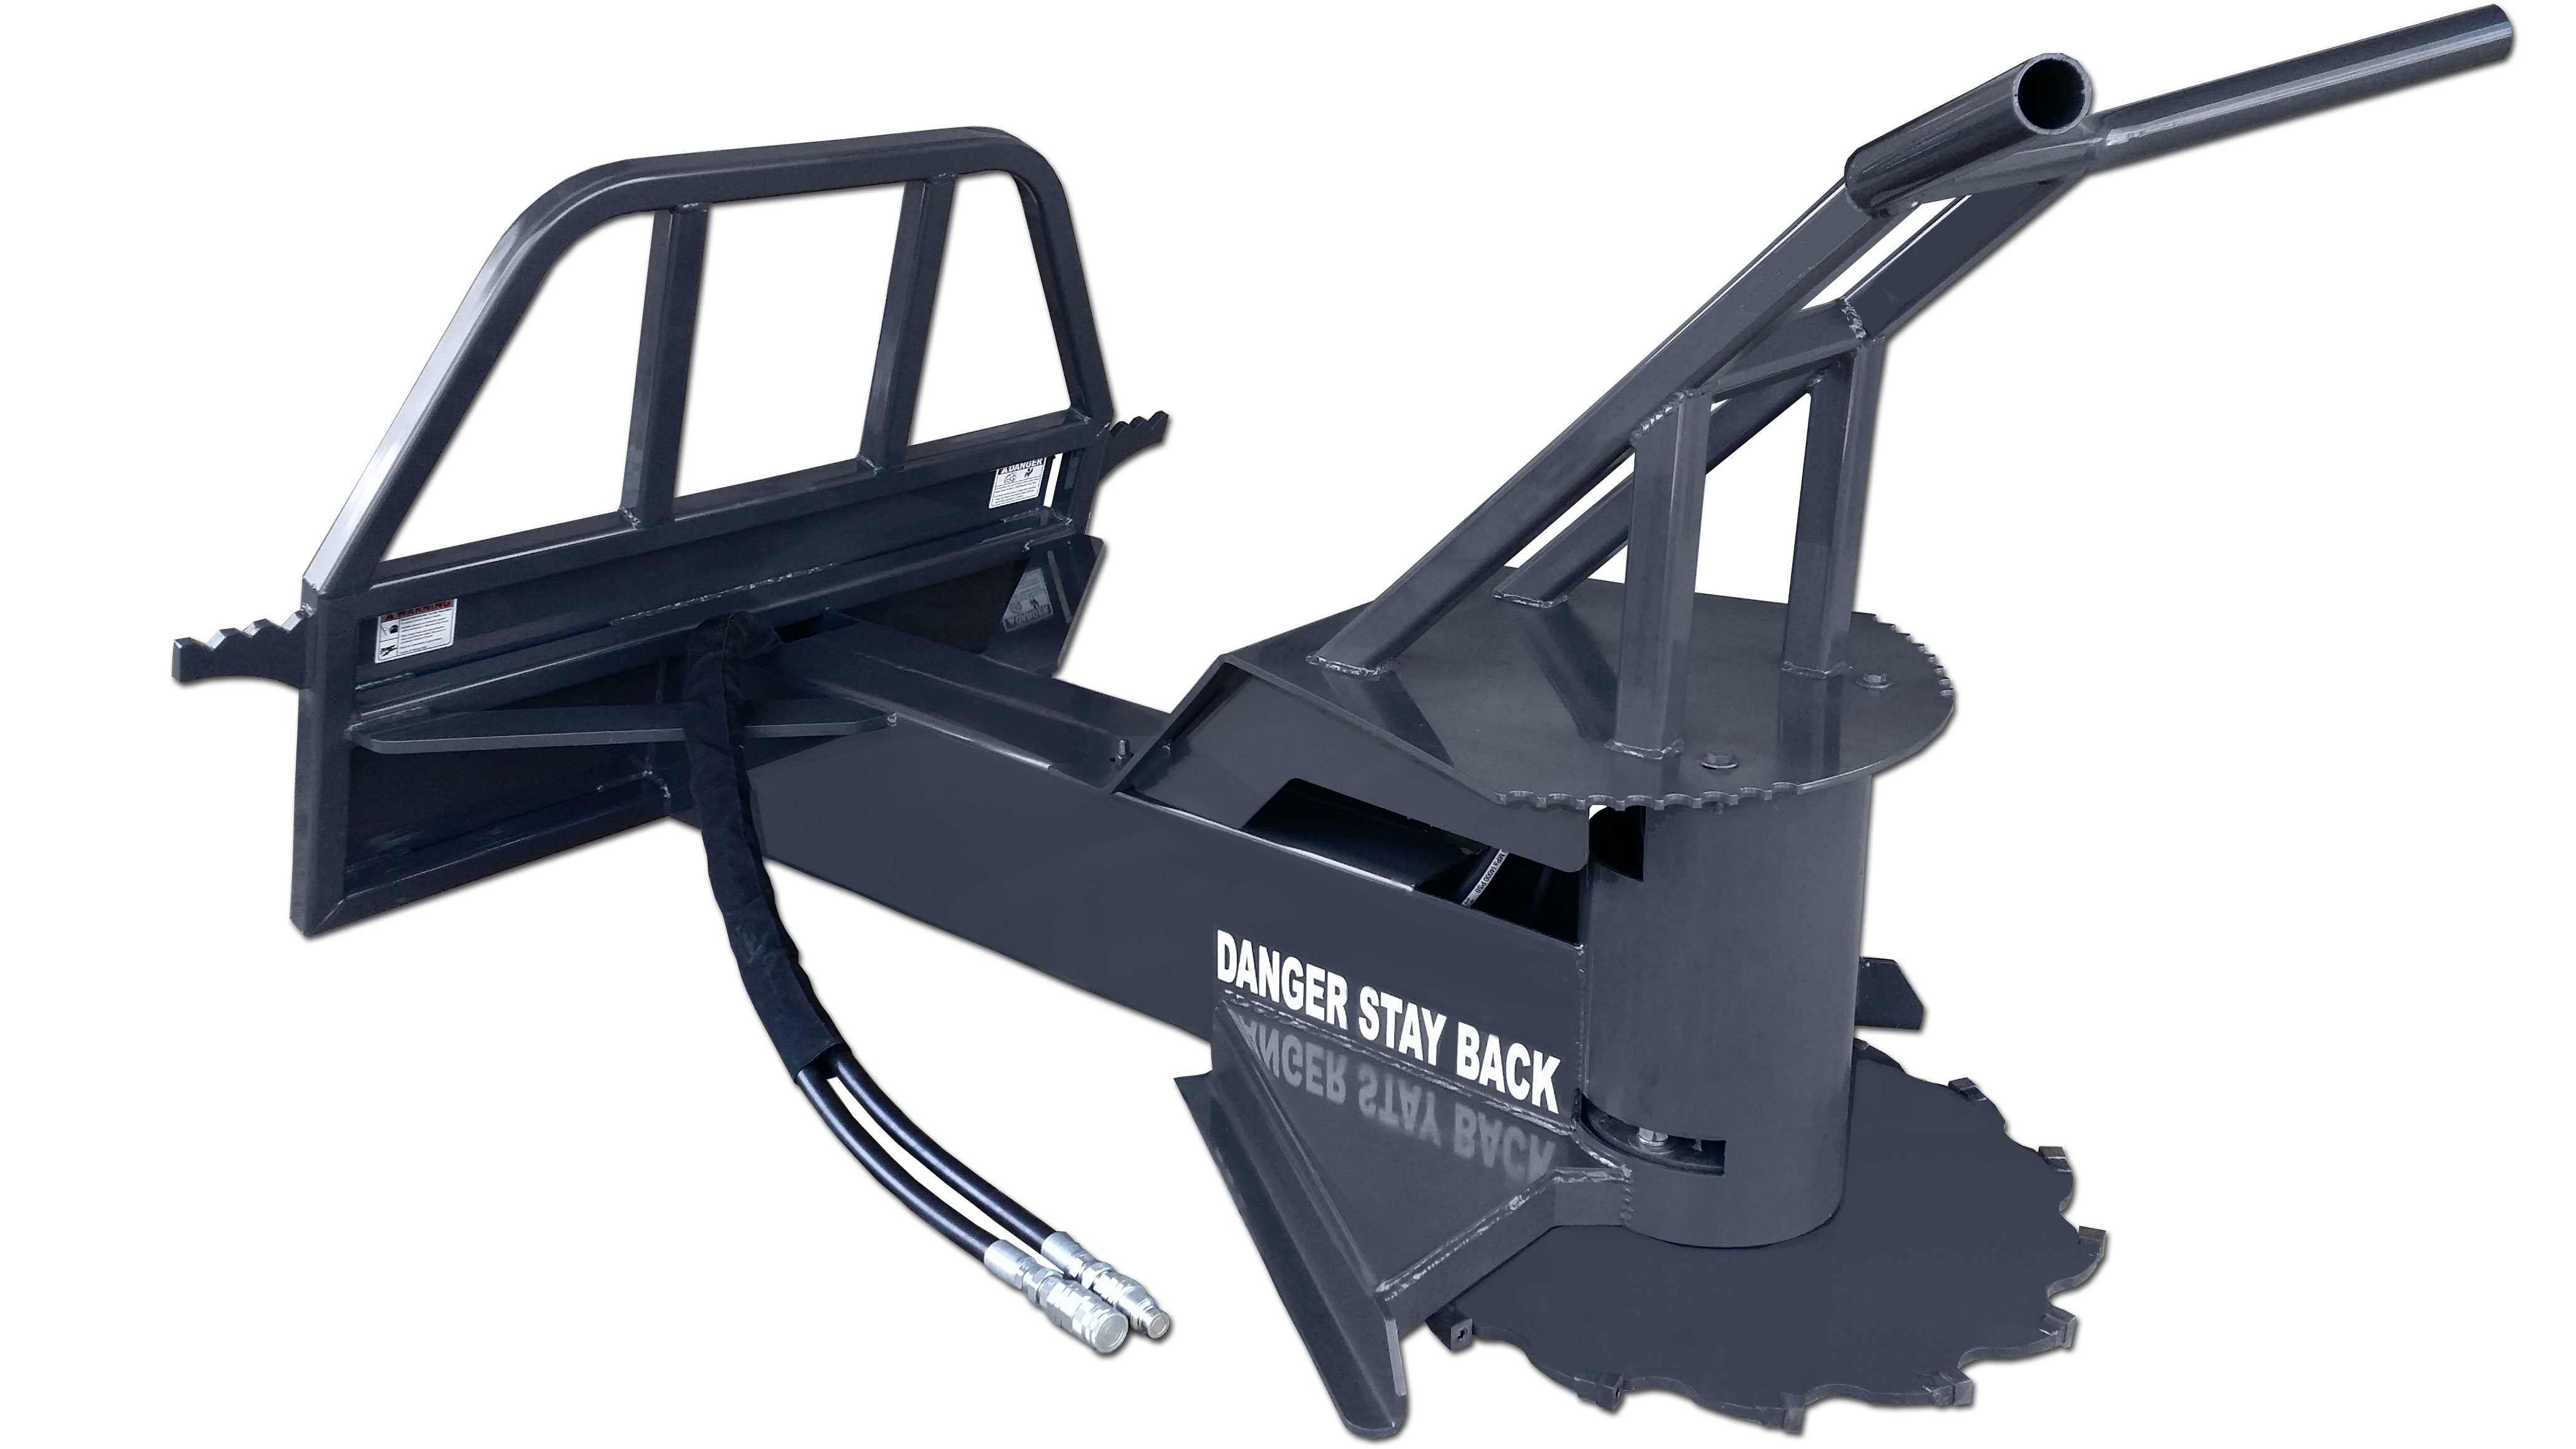 Skid Steer Tree Saw By Cid Attachments